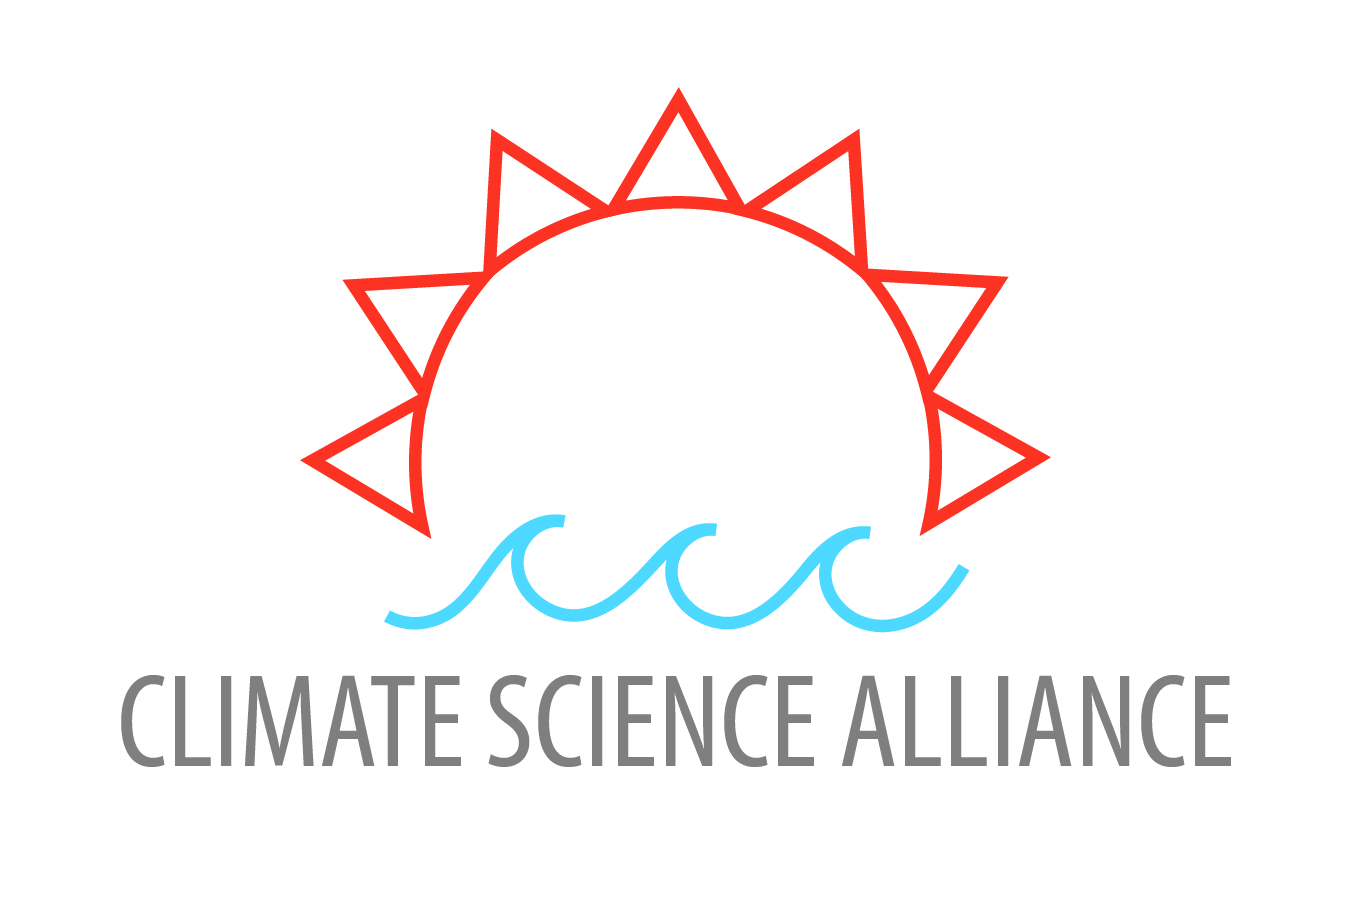 Climate Science Alliance logos Final-01_hi res copy.jpg